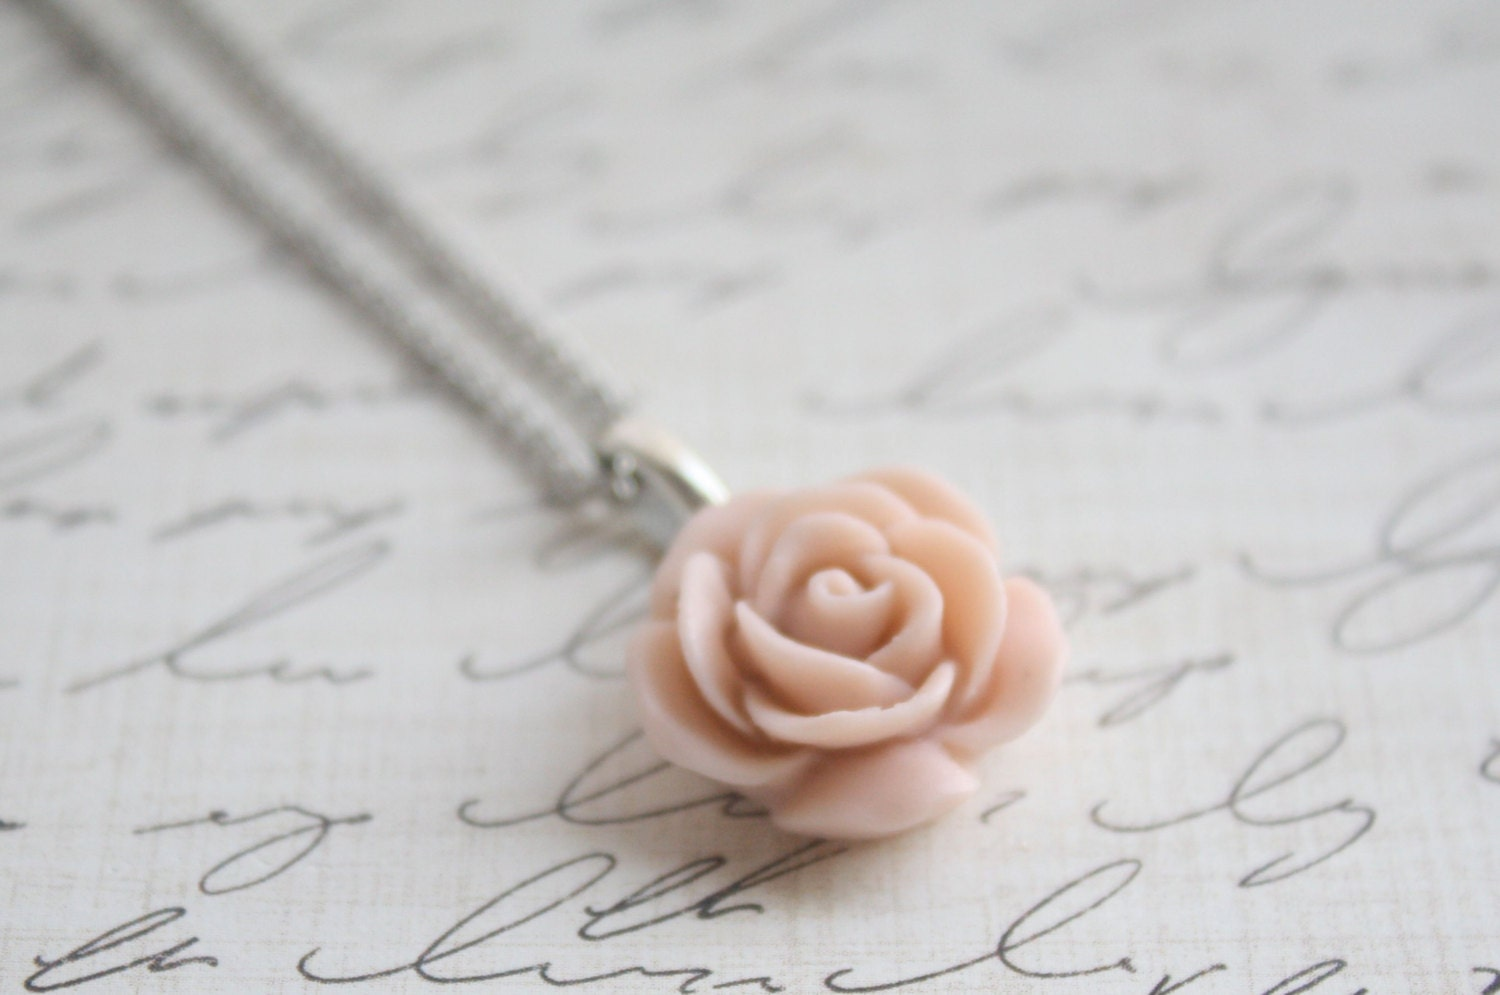 Pick your Rose Color - Antique Pink Rose Necklace - Blush Rose Necklace - Flower Necklace - Bridesmaid Necklace - Floral Necklace - GiGisPetals